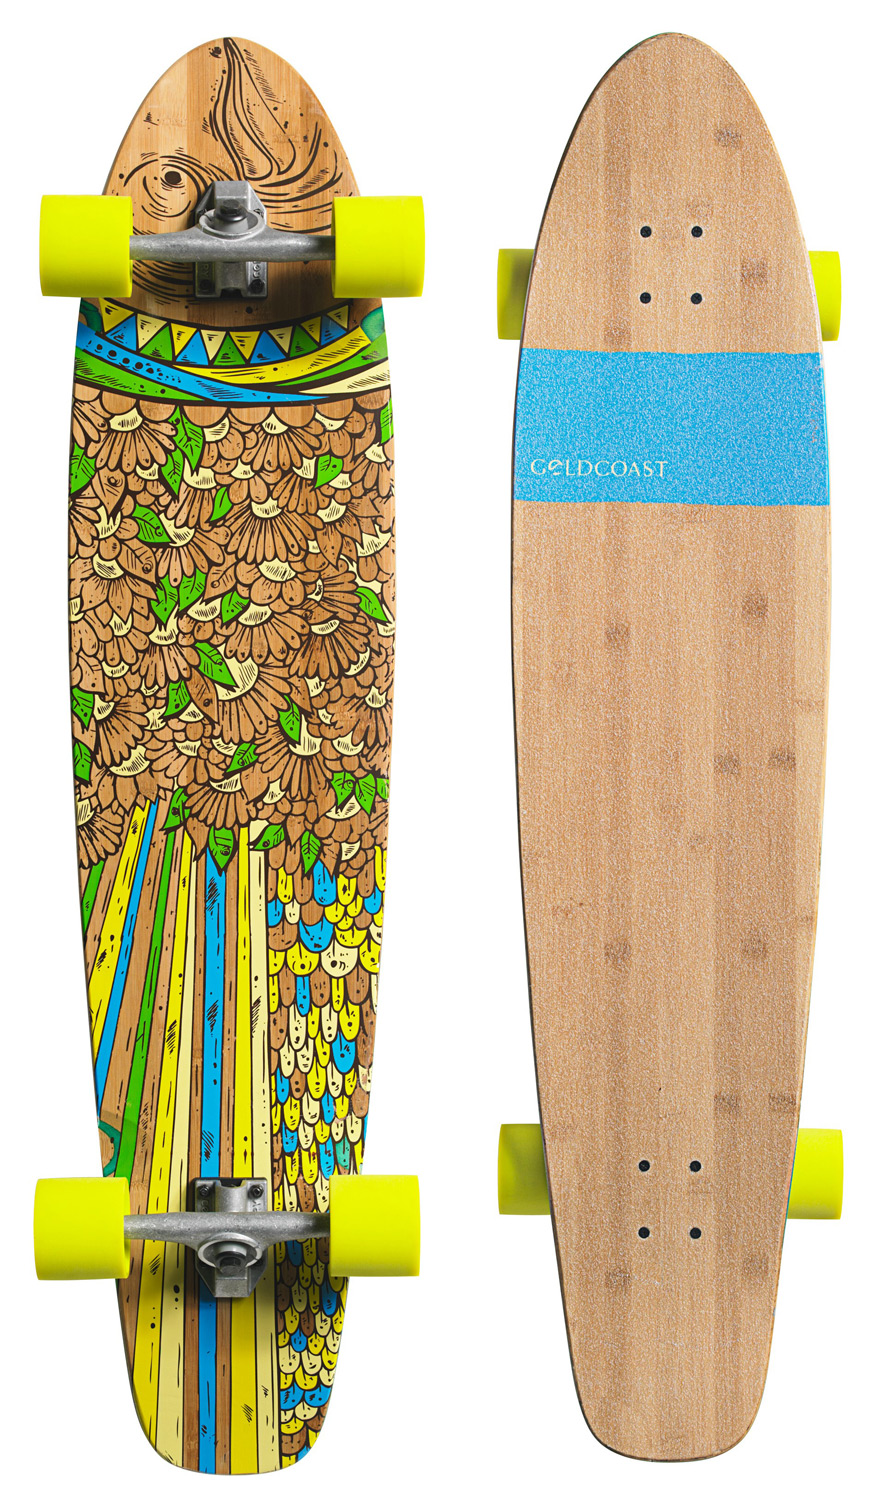 "Skateboard Key Features of the Goldcoast Snapper Longboard Skateboard Complete: 44"" Long x 9.5"" Wide, 24"" Wheelbase 7 ply Bamboo/Maple Construction Die Cut Grip Tape Big Slicks, 75mm 78a Century 159mm Regular Pivot Trucks 90a Bushings Century .25"" Flat Risers Genuine GoldCoast ABEC 7 Bearings - $159.95"